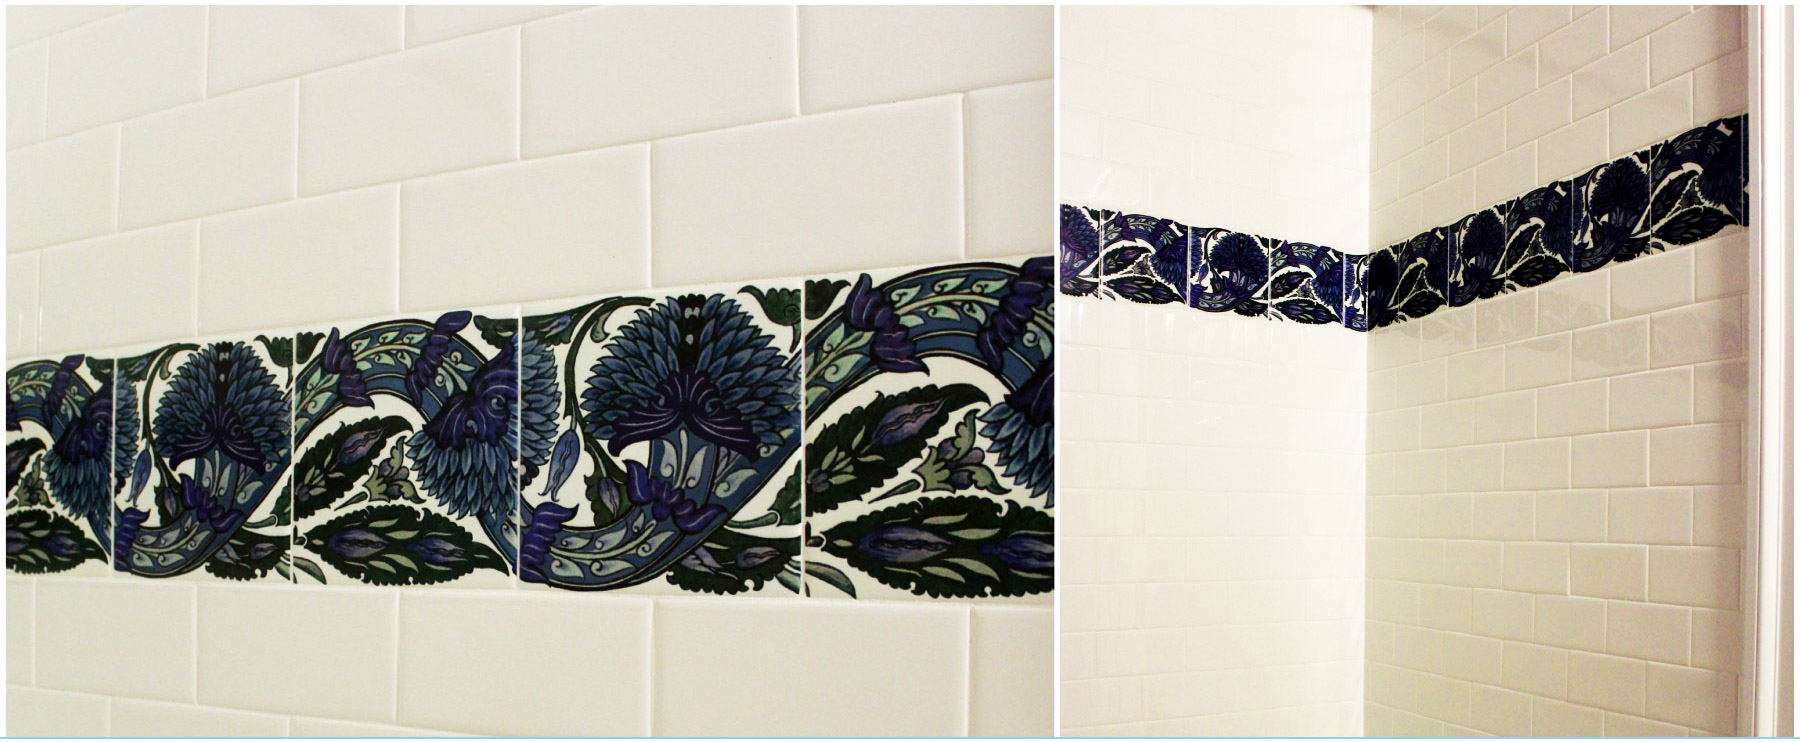 William De Morgan *Persian* tile, Blue Peony scroll, made for the P and O liner, Arabia